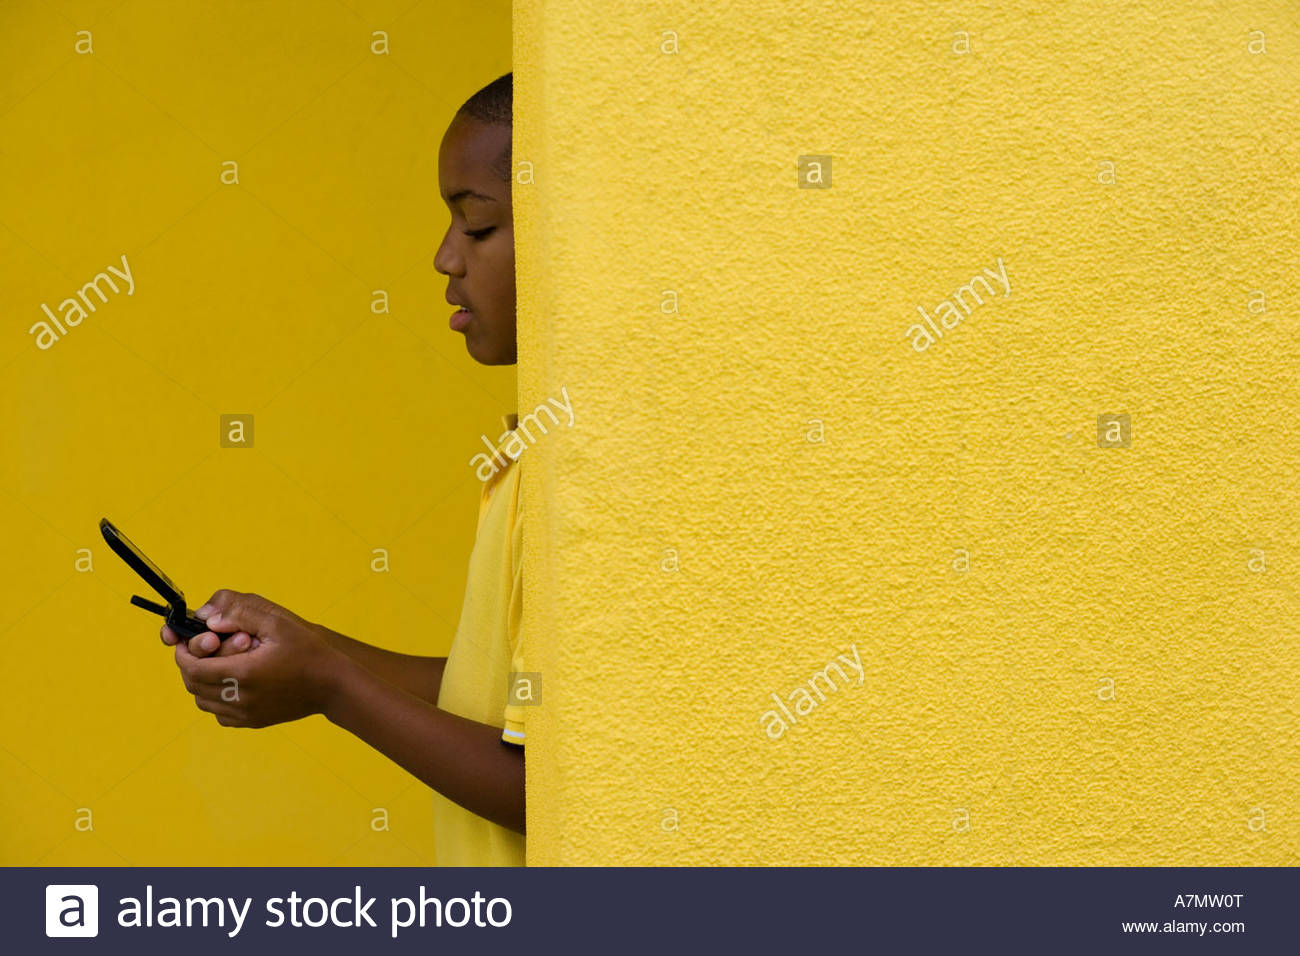 Boy 9 11 standing behind yellow wall text messaging on mobile phone profile - Stock Image